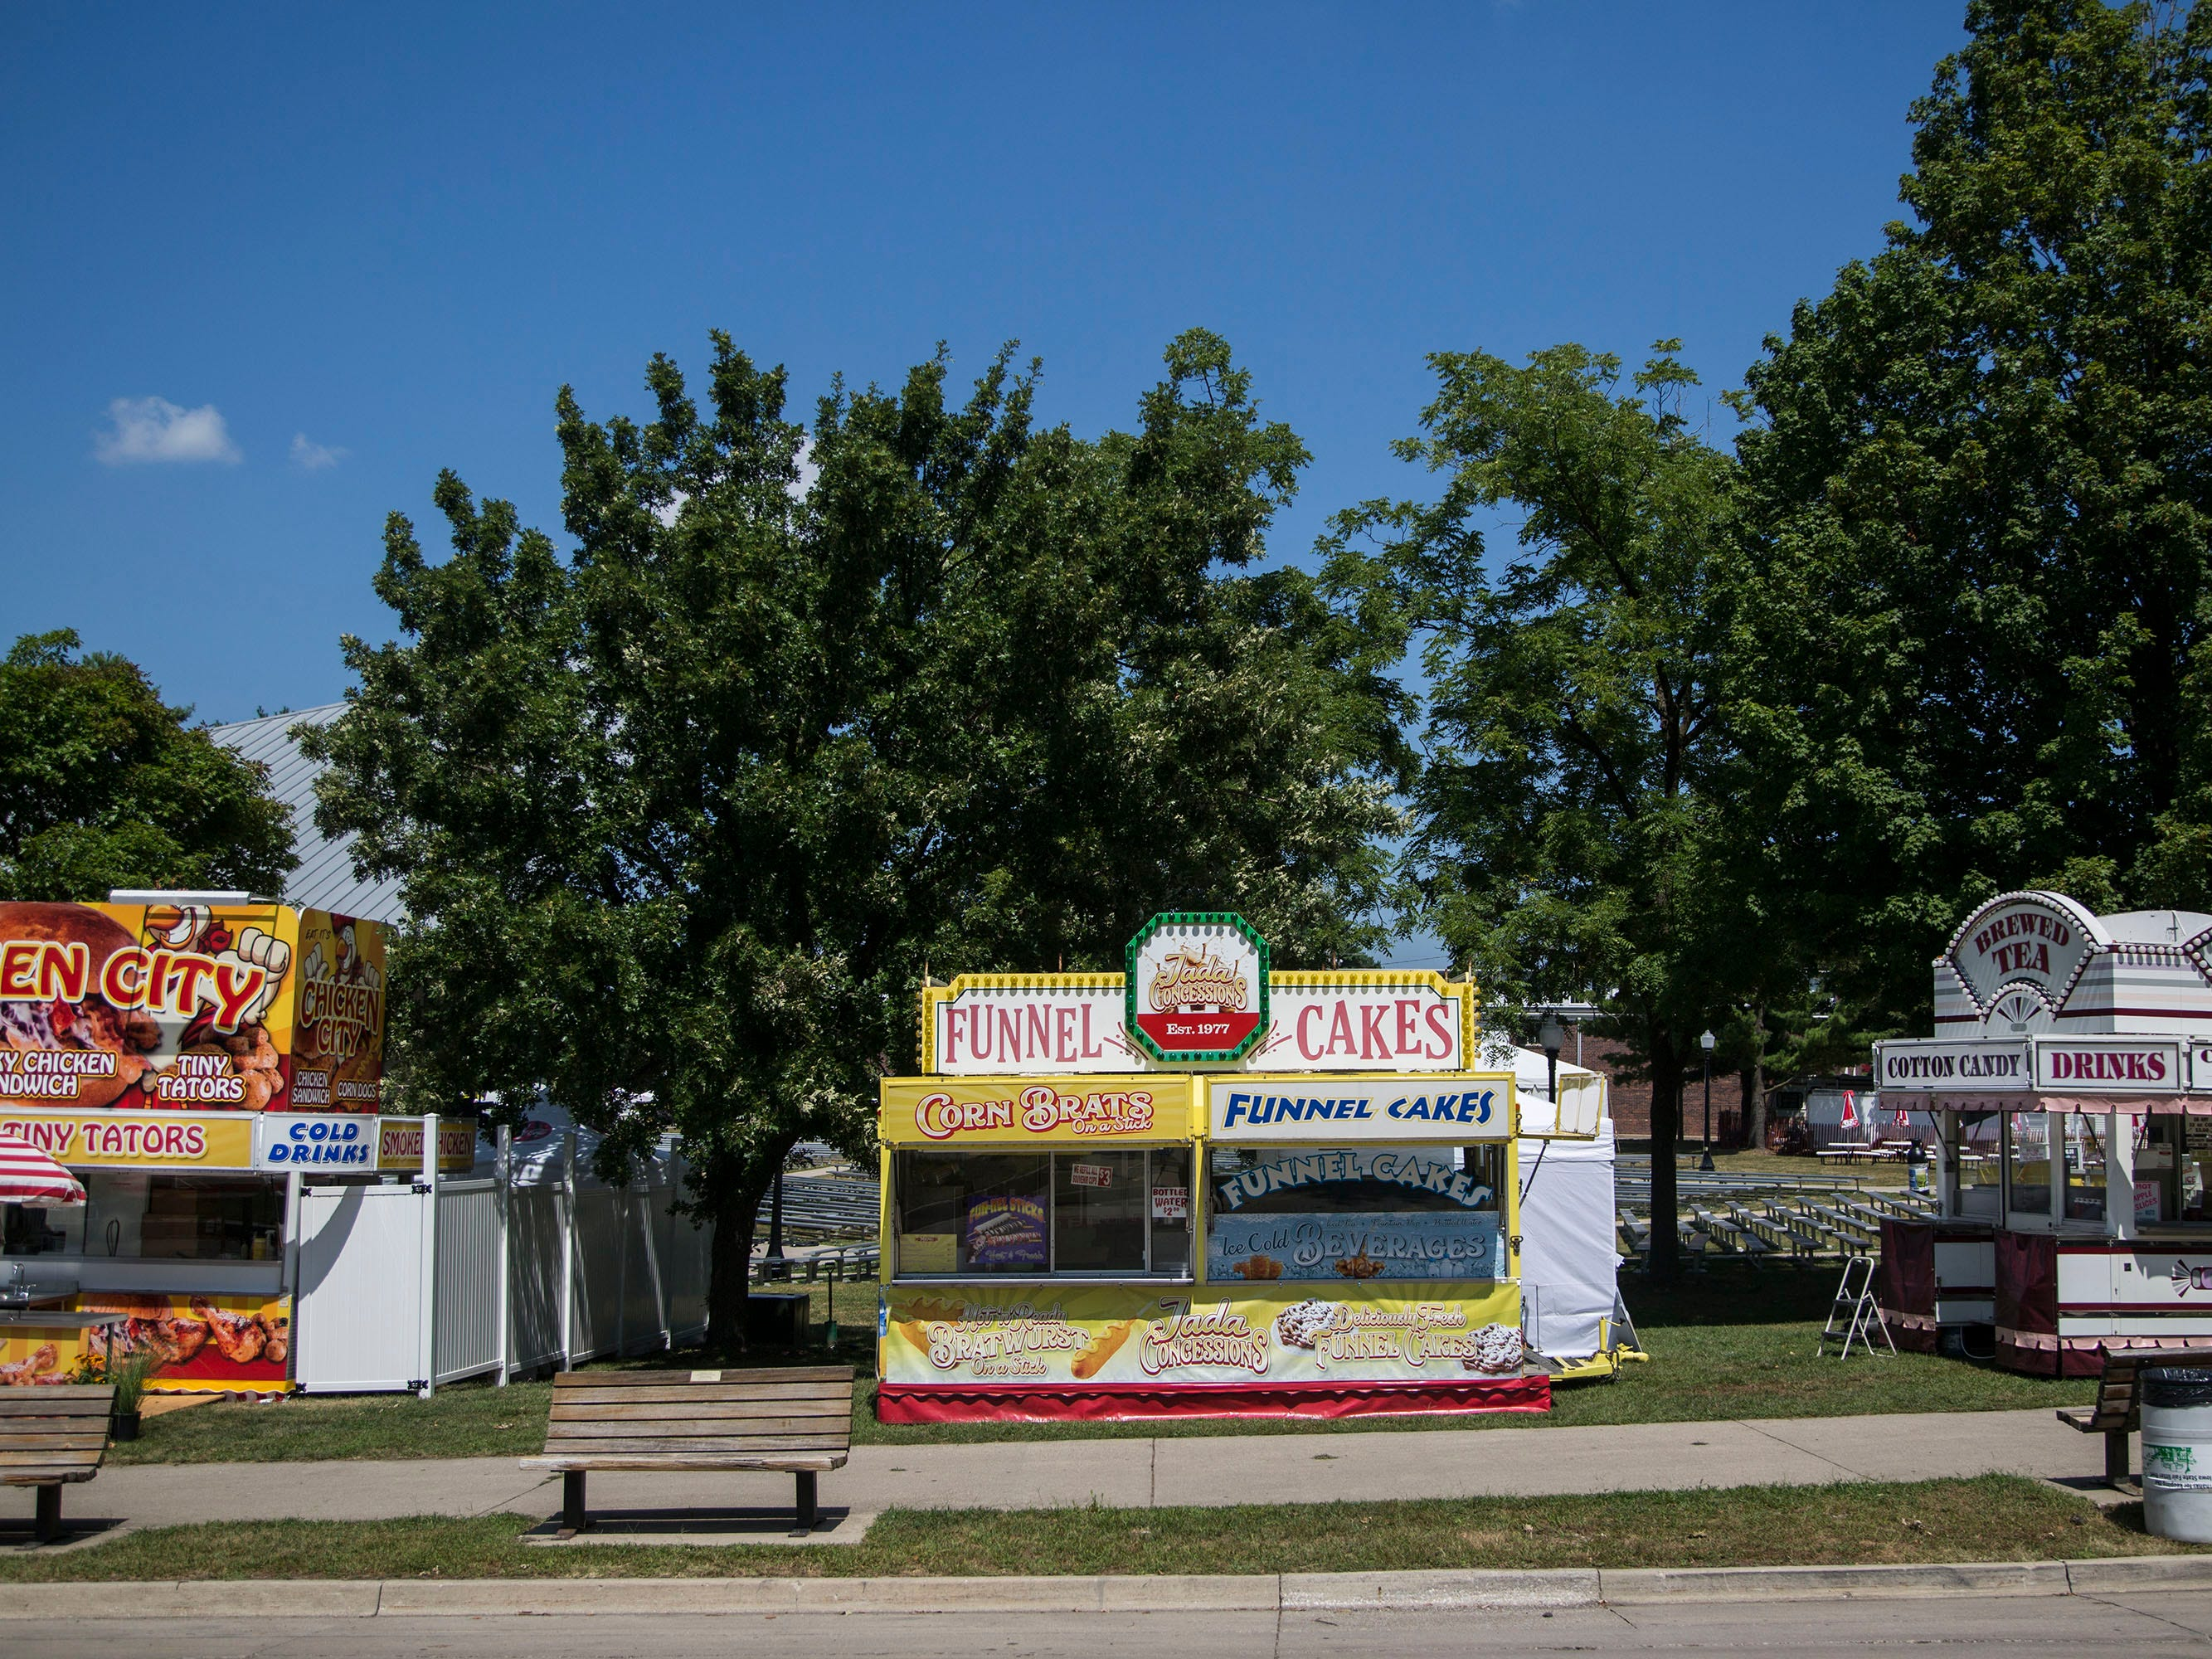 Jada Smith's funnel cake stand sits in a sunny spot at the base of a hill on Grand Avenue at Iowa State Fair on Wednesday, Aug. 8, 2018, the day before the fair begins.